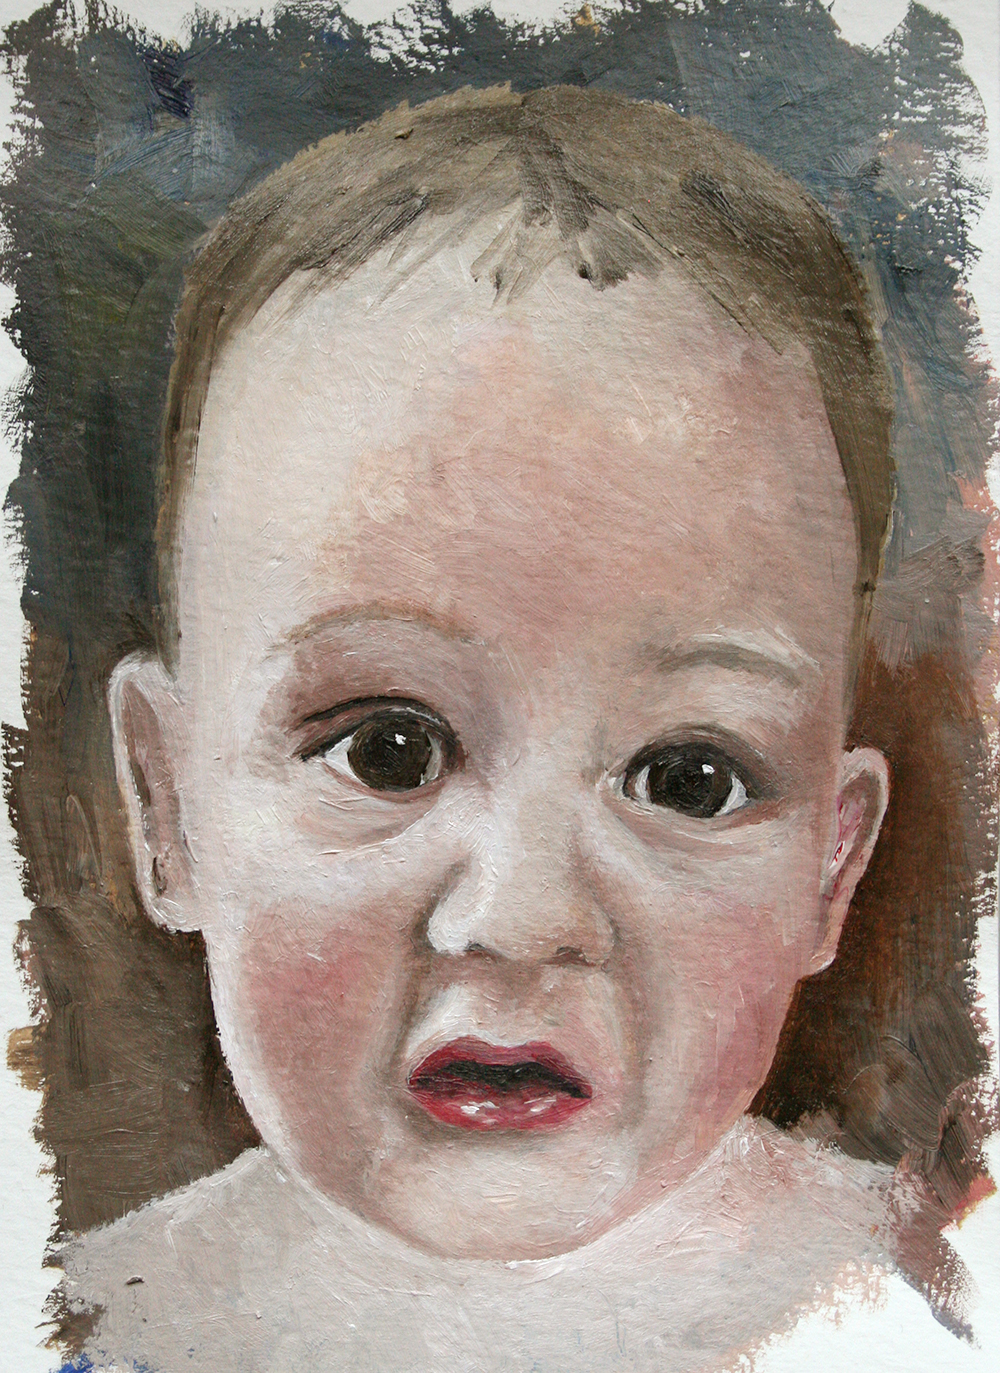 Oil Sketch of Baby James. Oil on Gessoed Paper.